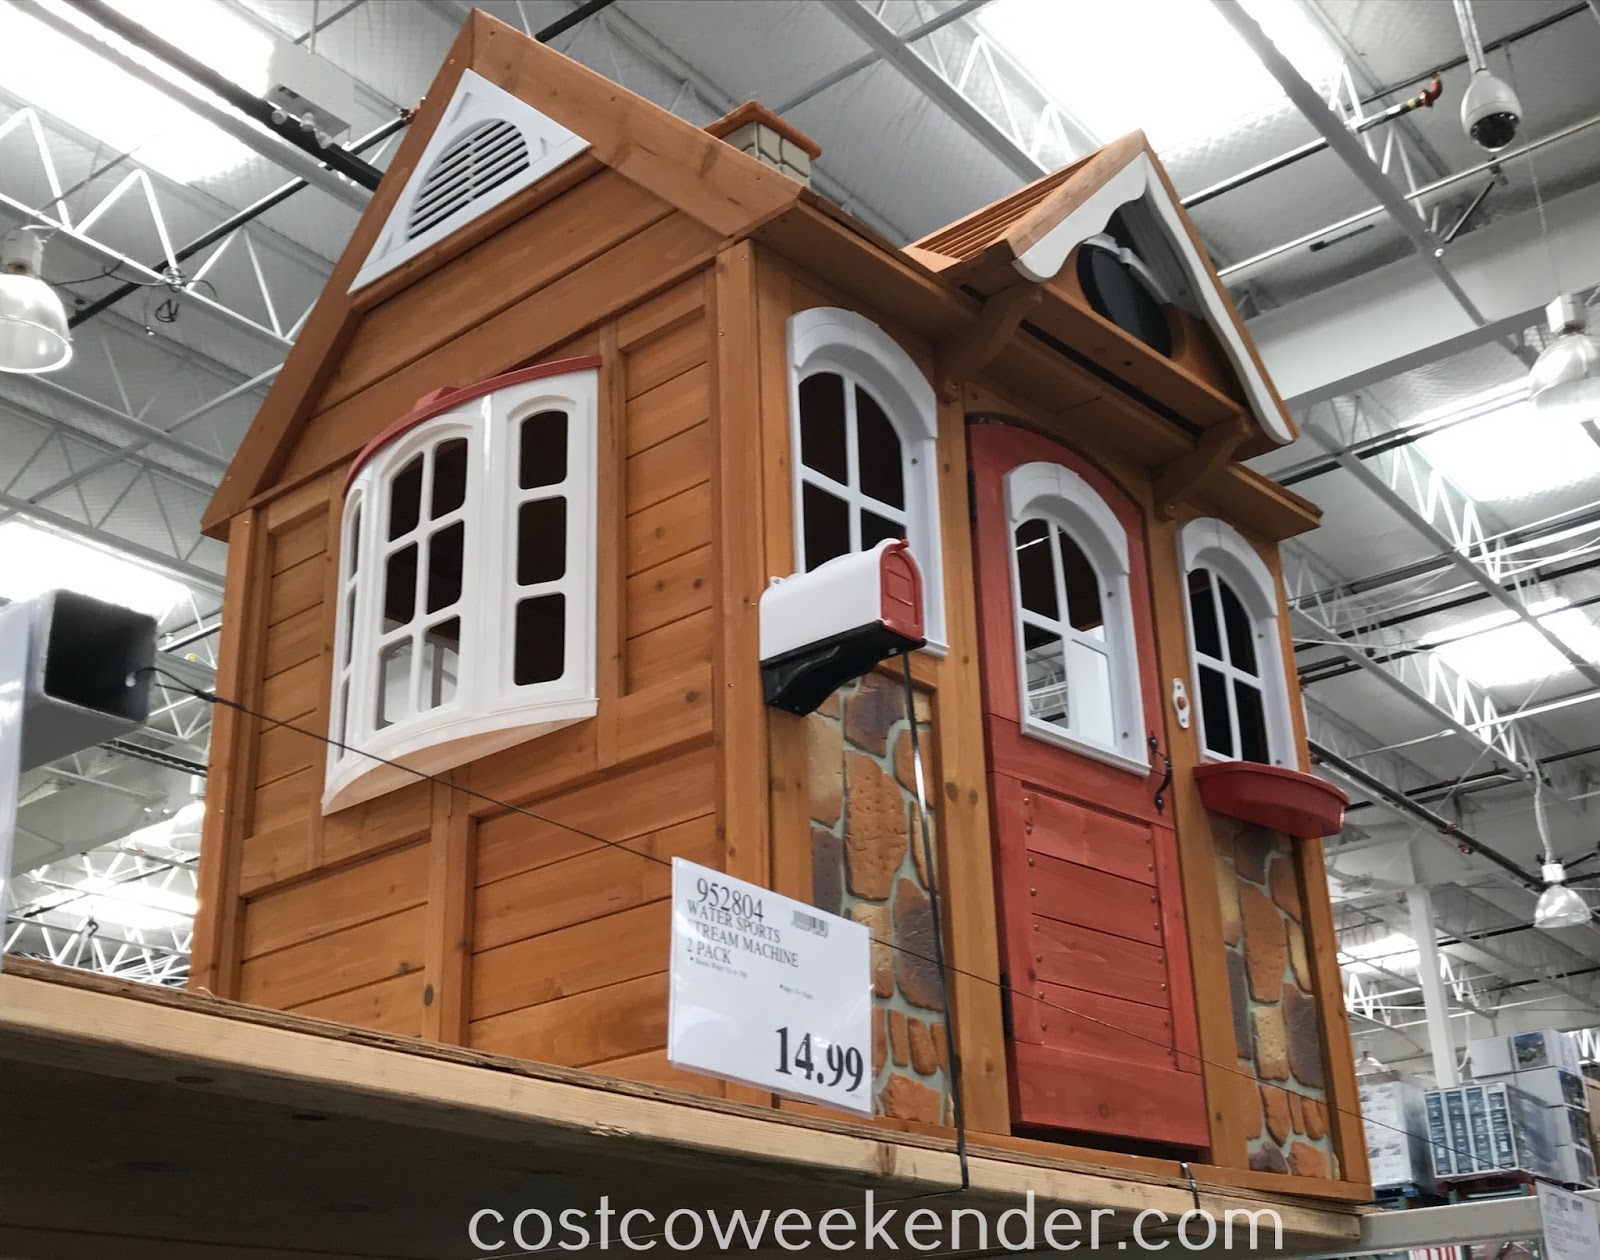 The kids will have fun in their own home with the Cedar Summit Stoneycreek Cedar Playhouse